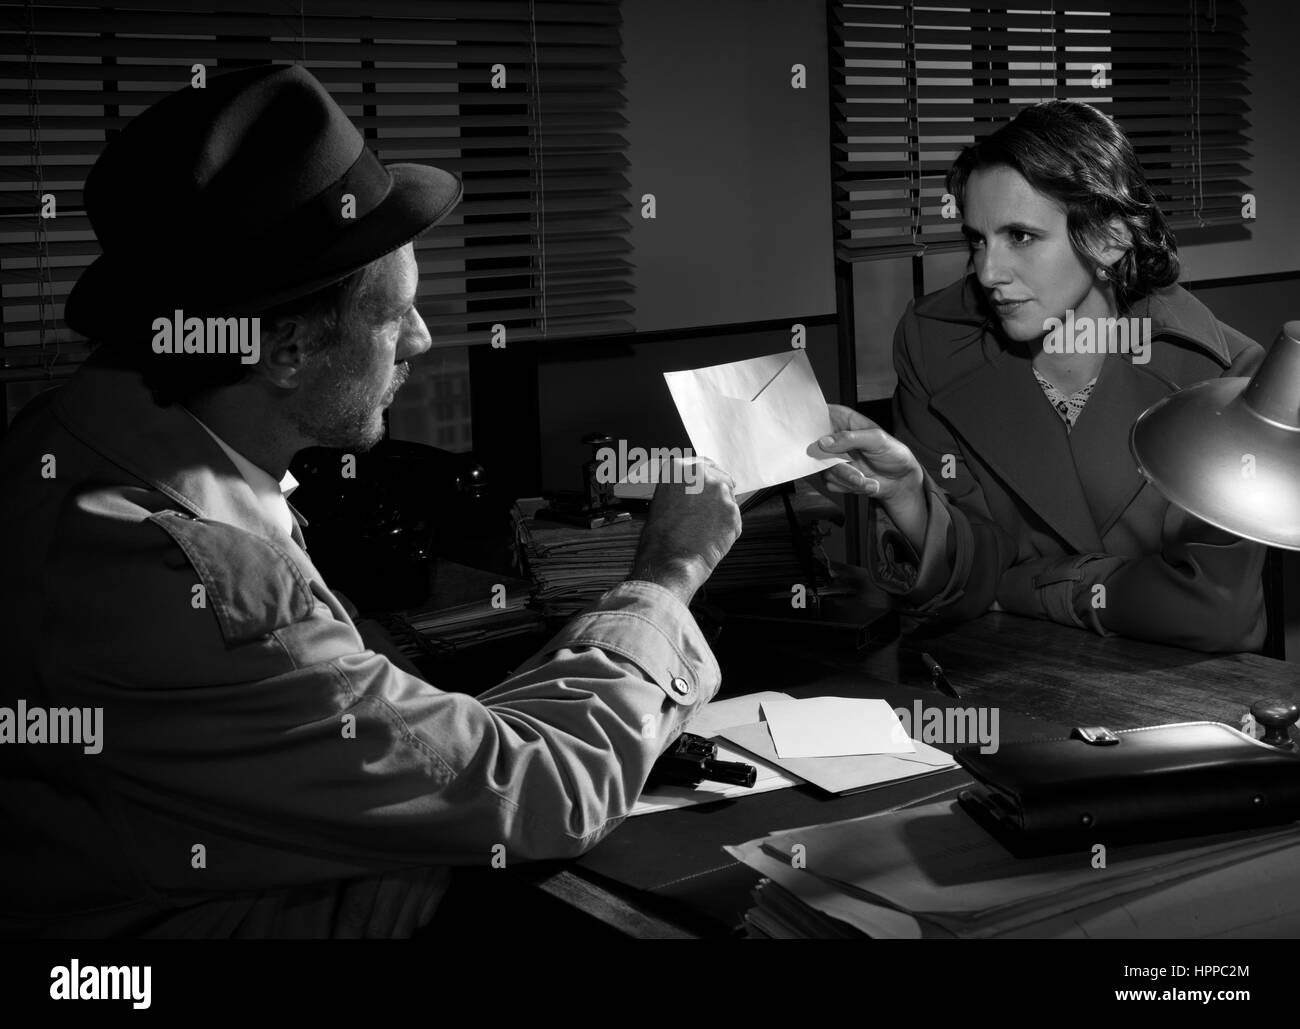 Woman handing over an envelope to a detective at police station, 1950s film noir style. - Stock Image